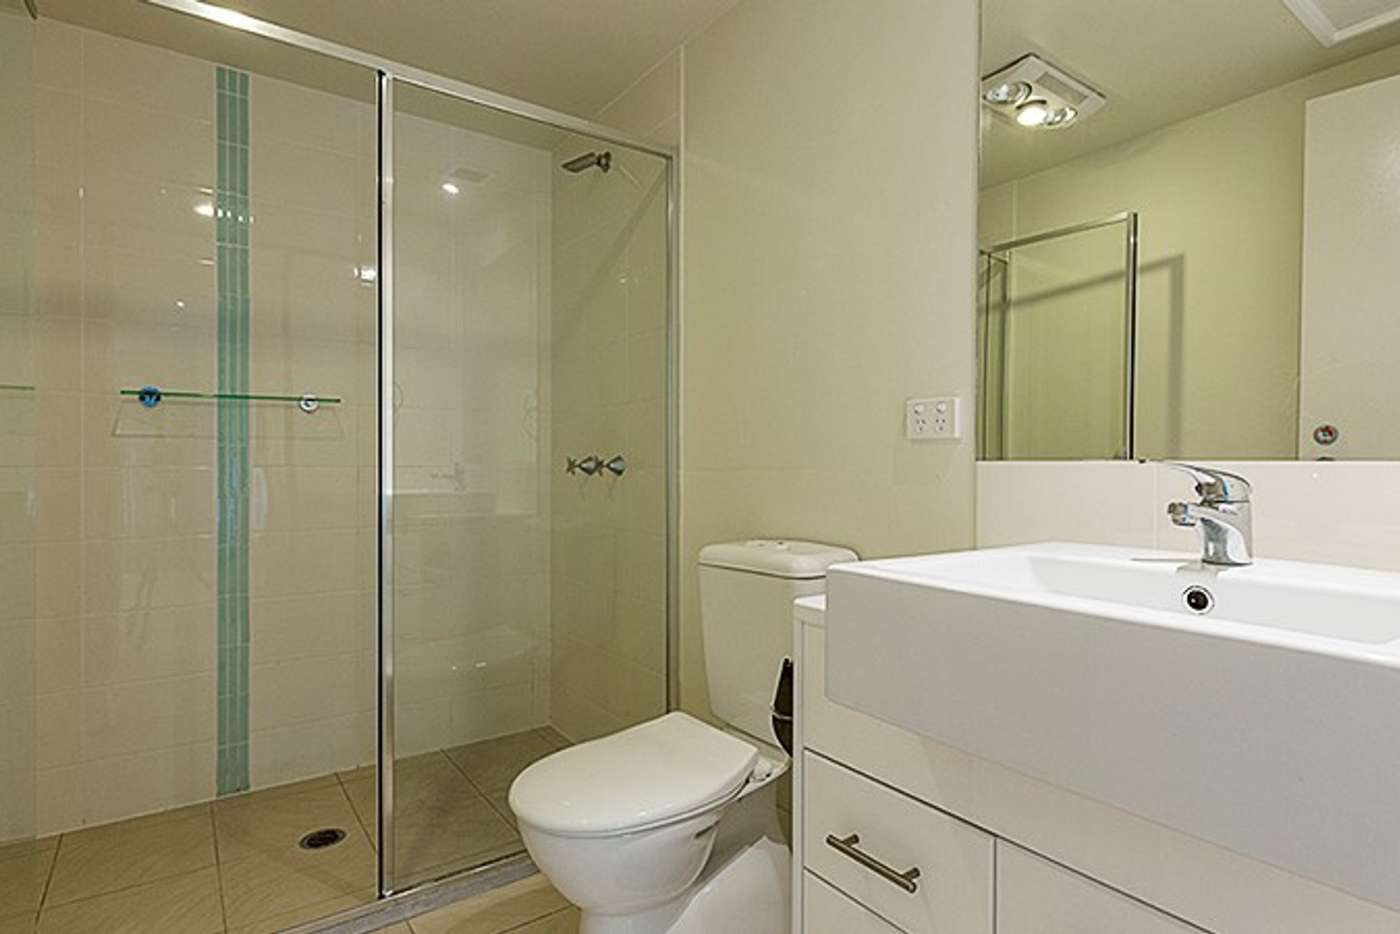 Sixth view of Homely apartment listing, 67/120 Thynne Street, Bruce ACT 2617